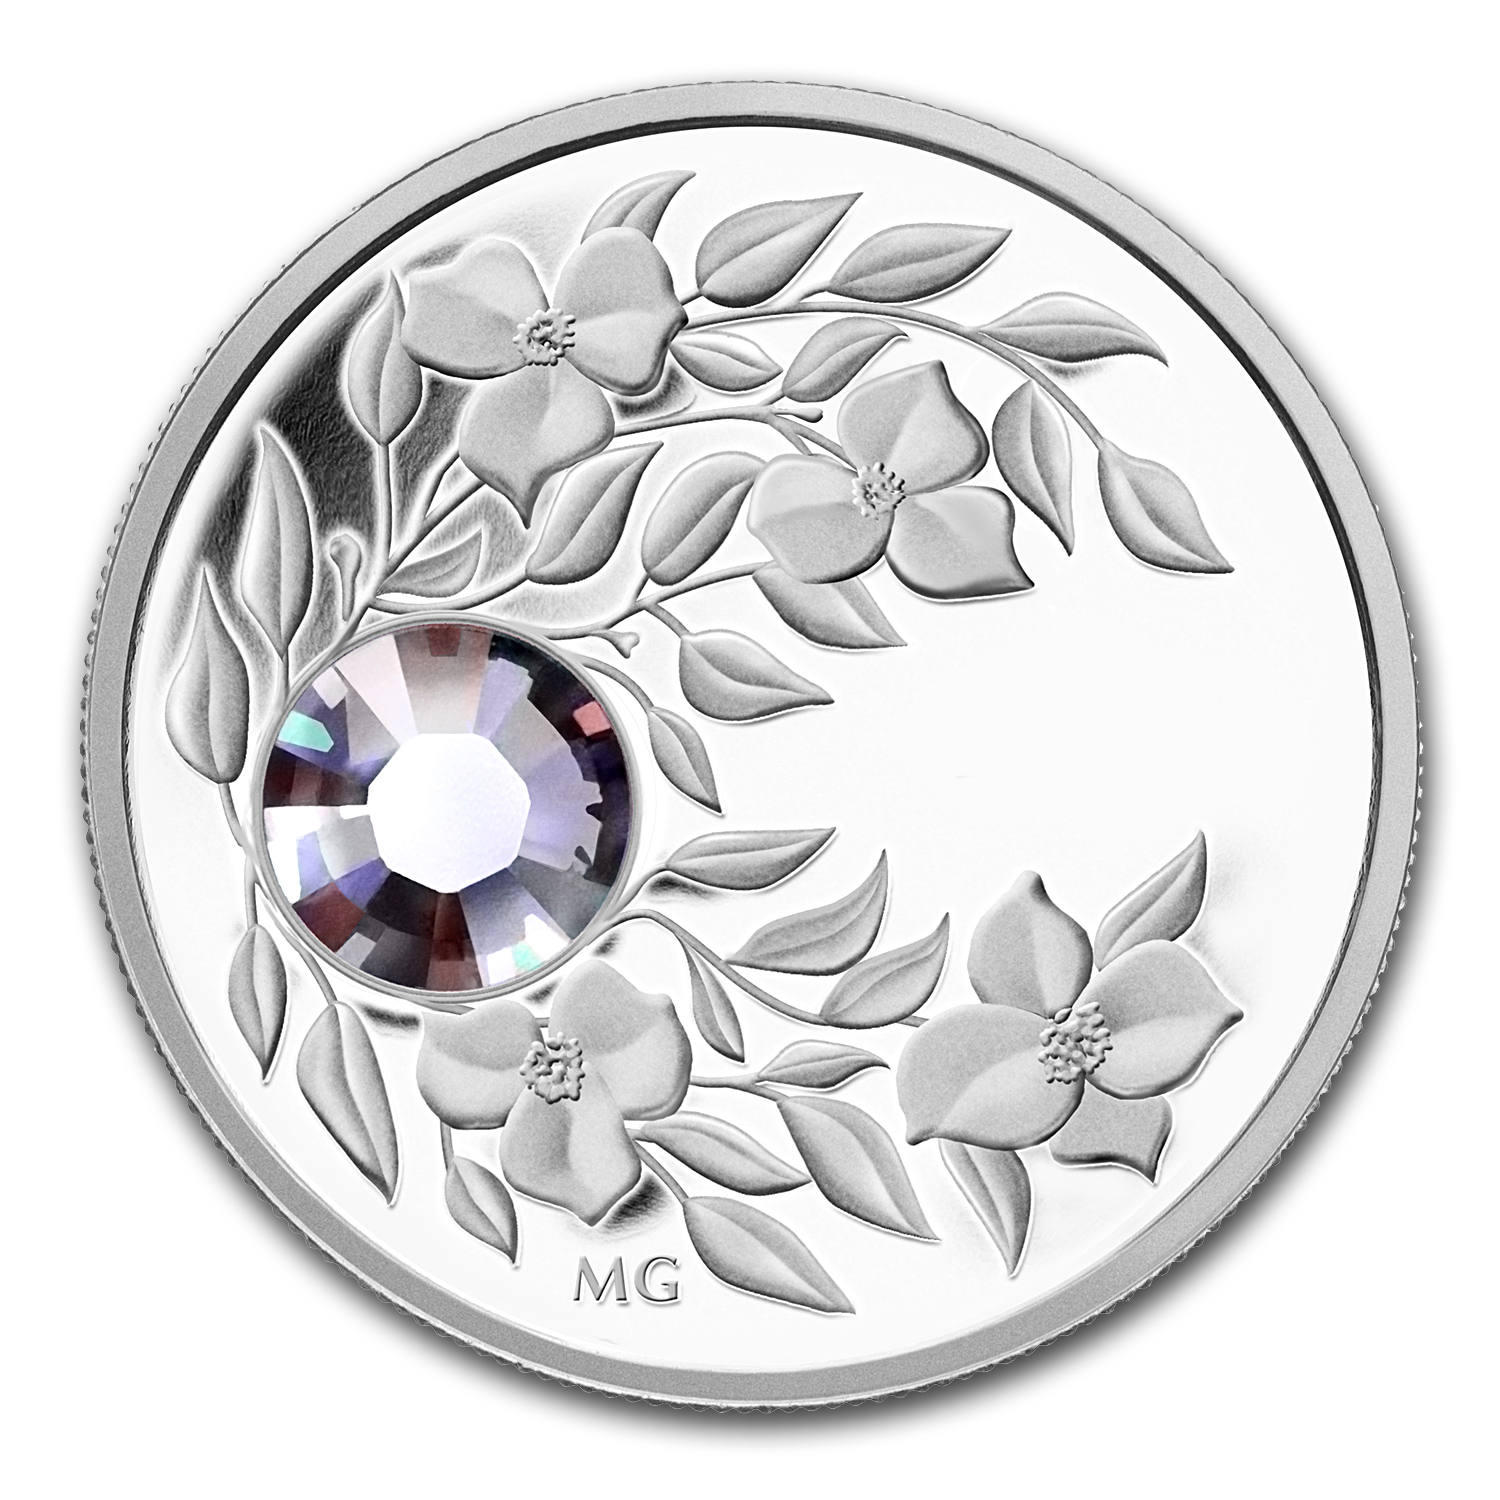 2012 1/4 oz Silver Canadian $3 Birthstone Coin June Alexandrite